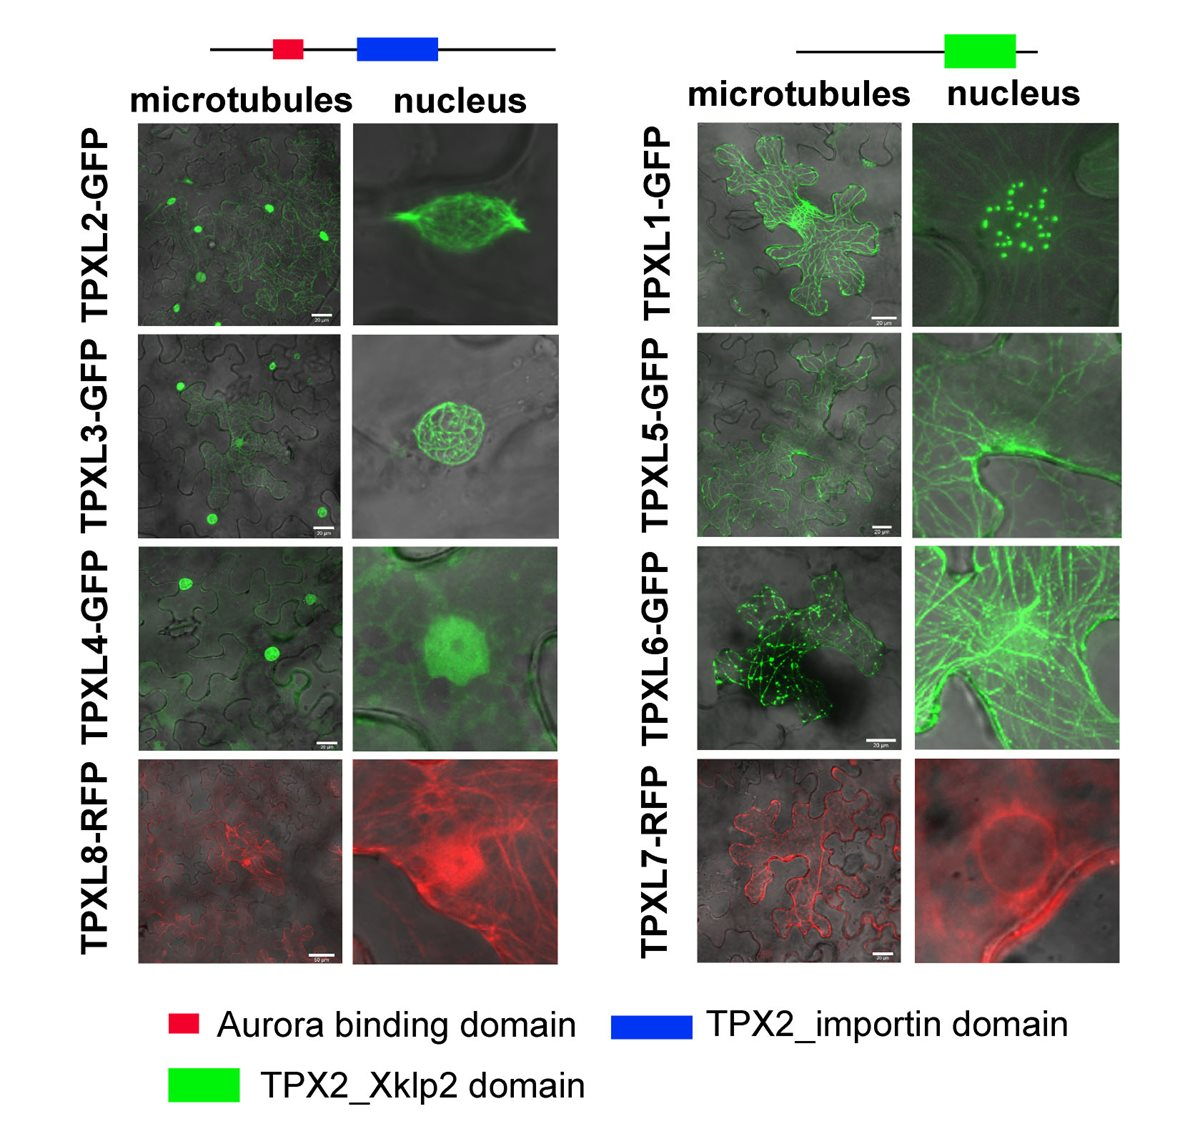 New publication: Functional divergence of microtubule-associated TPX2 family members in Arabidopsis thaliana